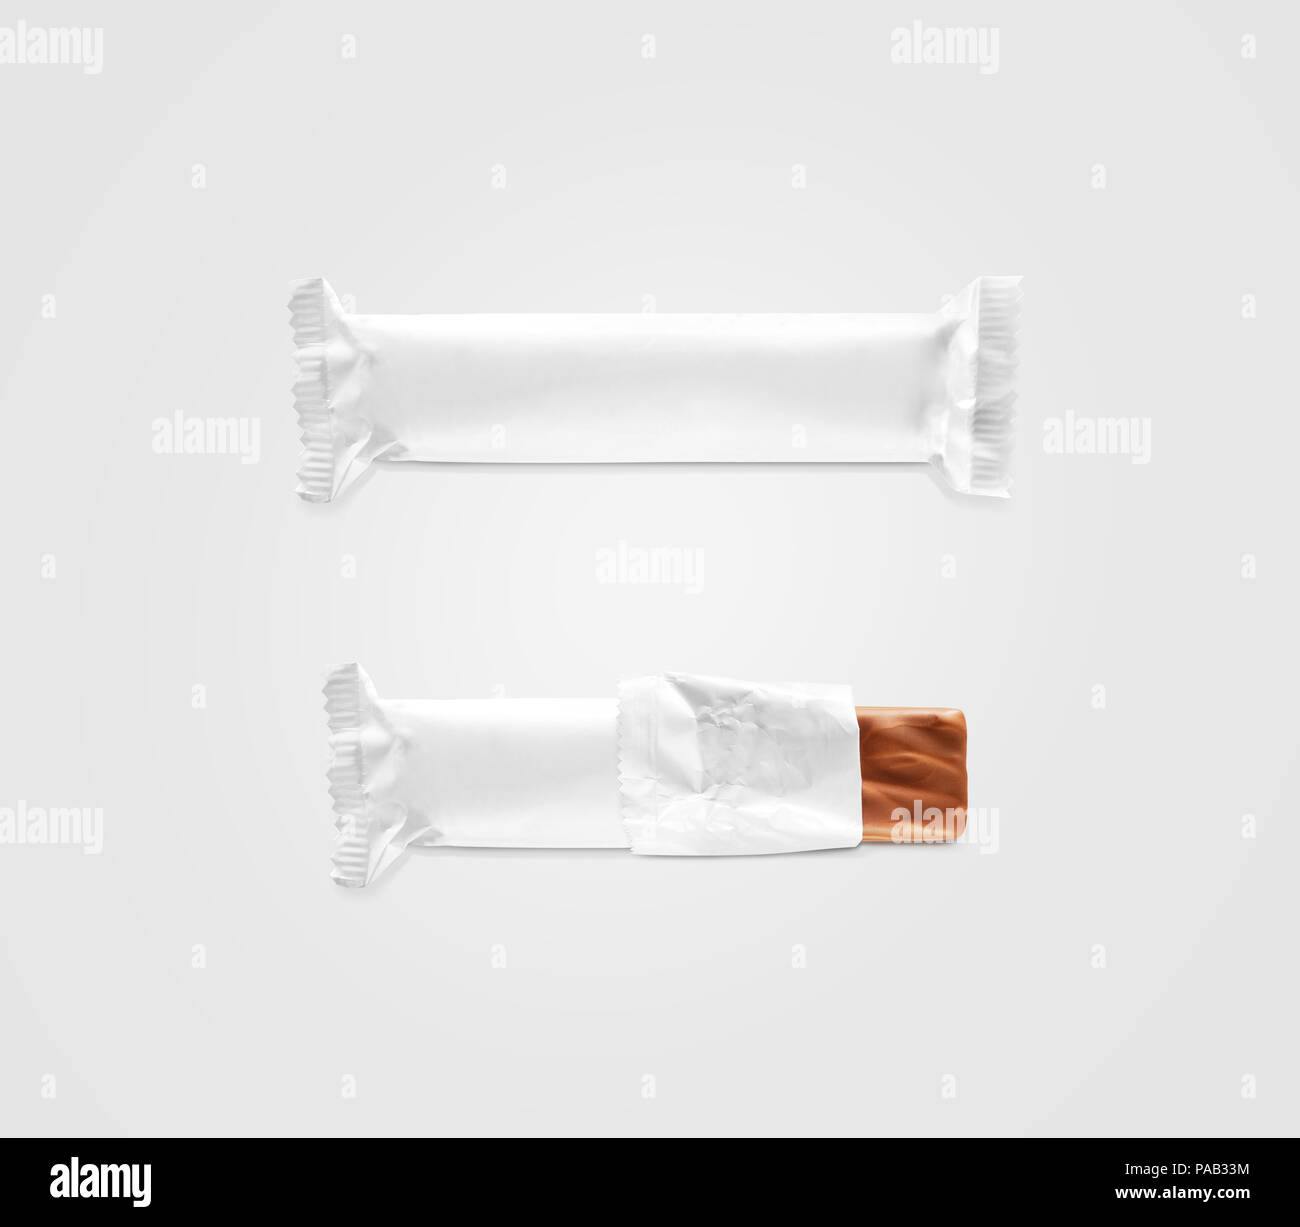 Blank White Candy Bar Plastic Wrap Mockup Isolated Closed And